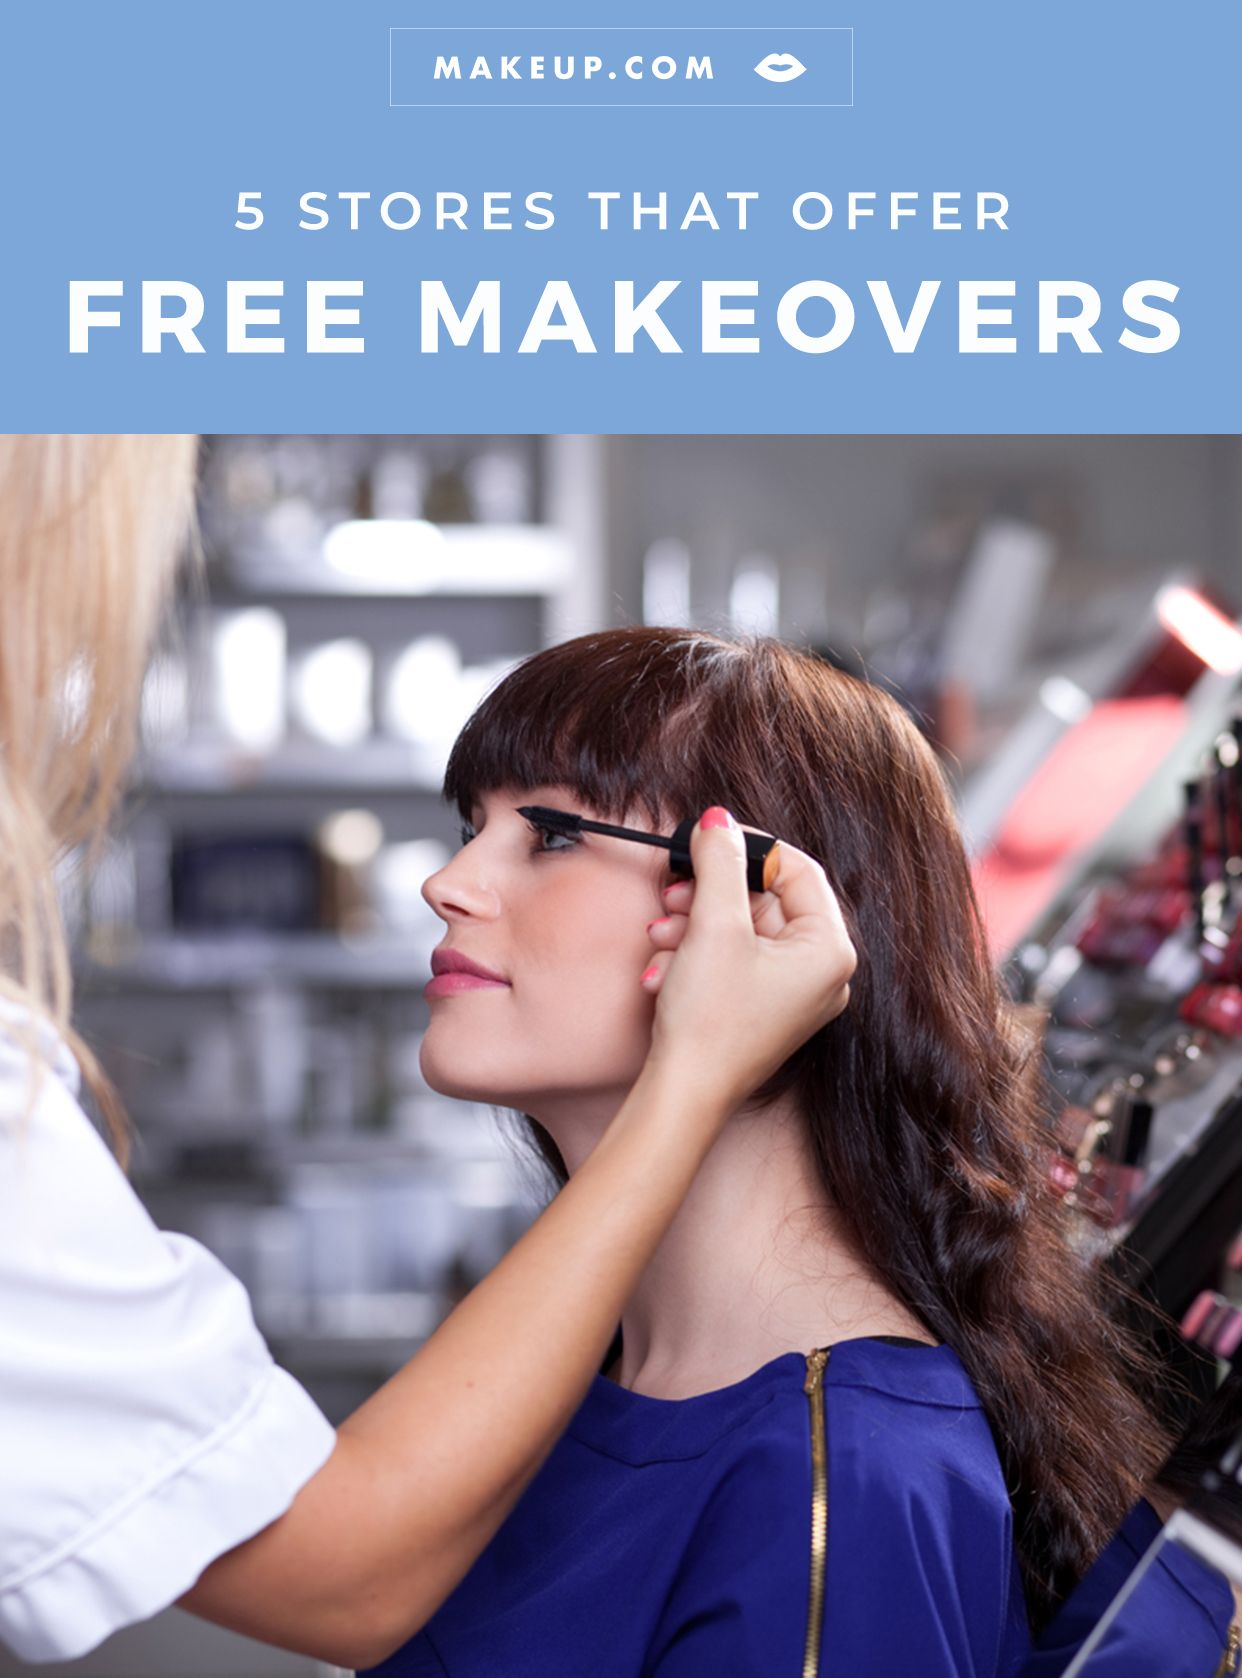 5 Stores That Offer Free Makeovers Free makeover, Makeup